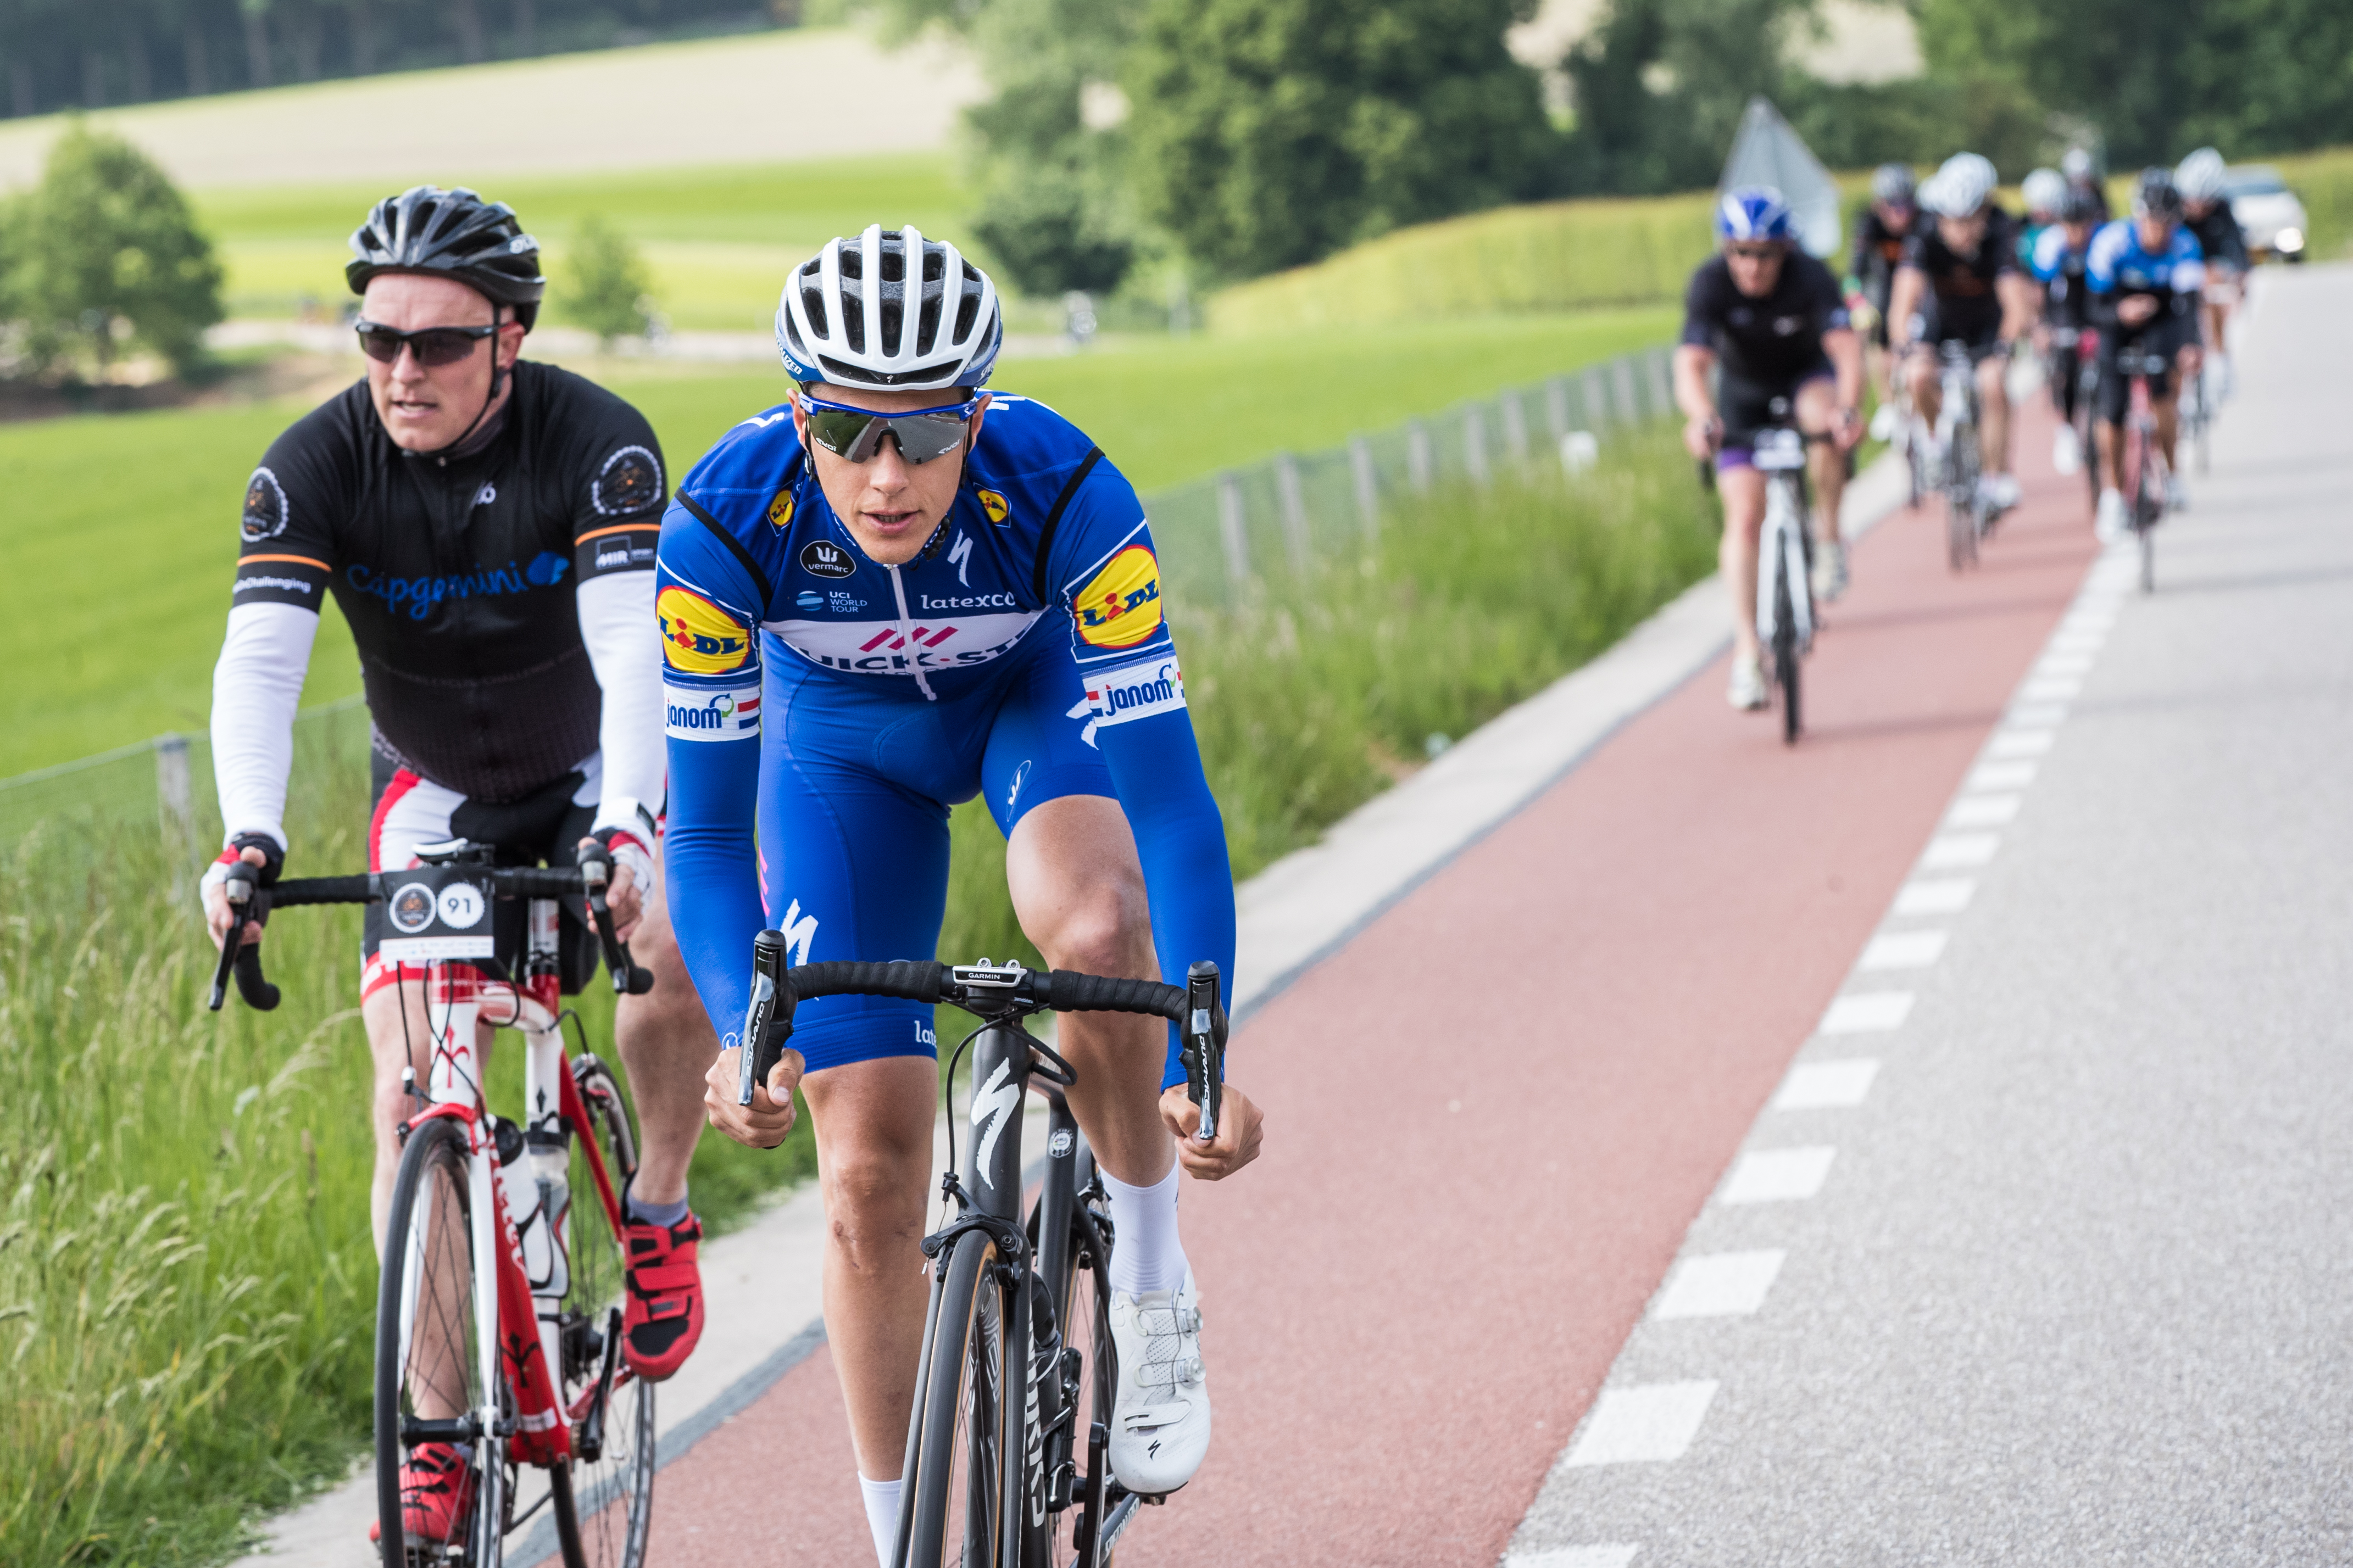 IT Leaders Cycling Challenge